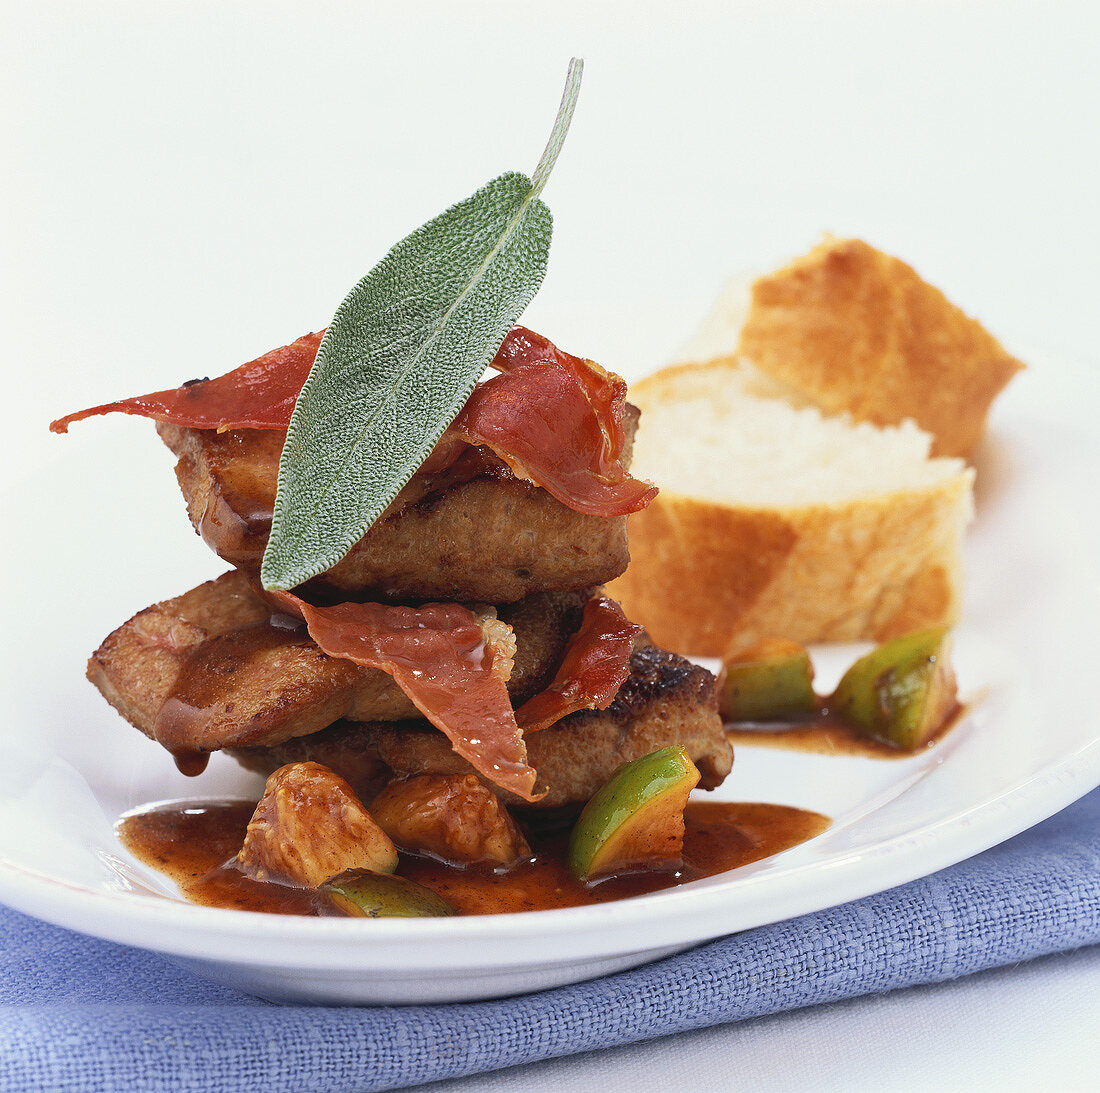 Calf's liver with figs and Parma ham